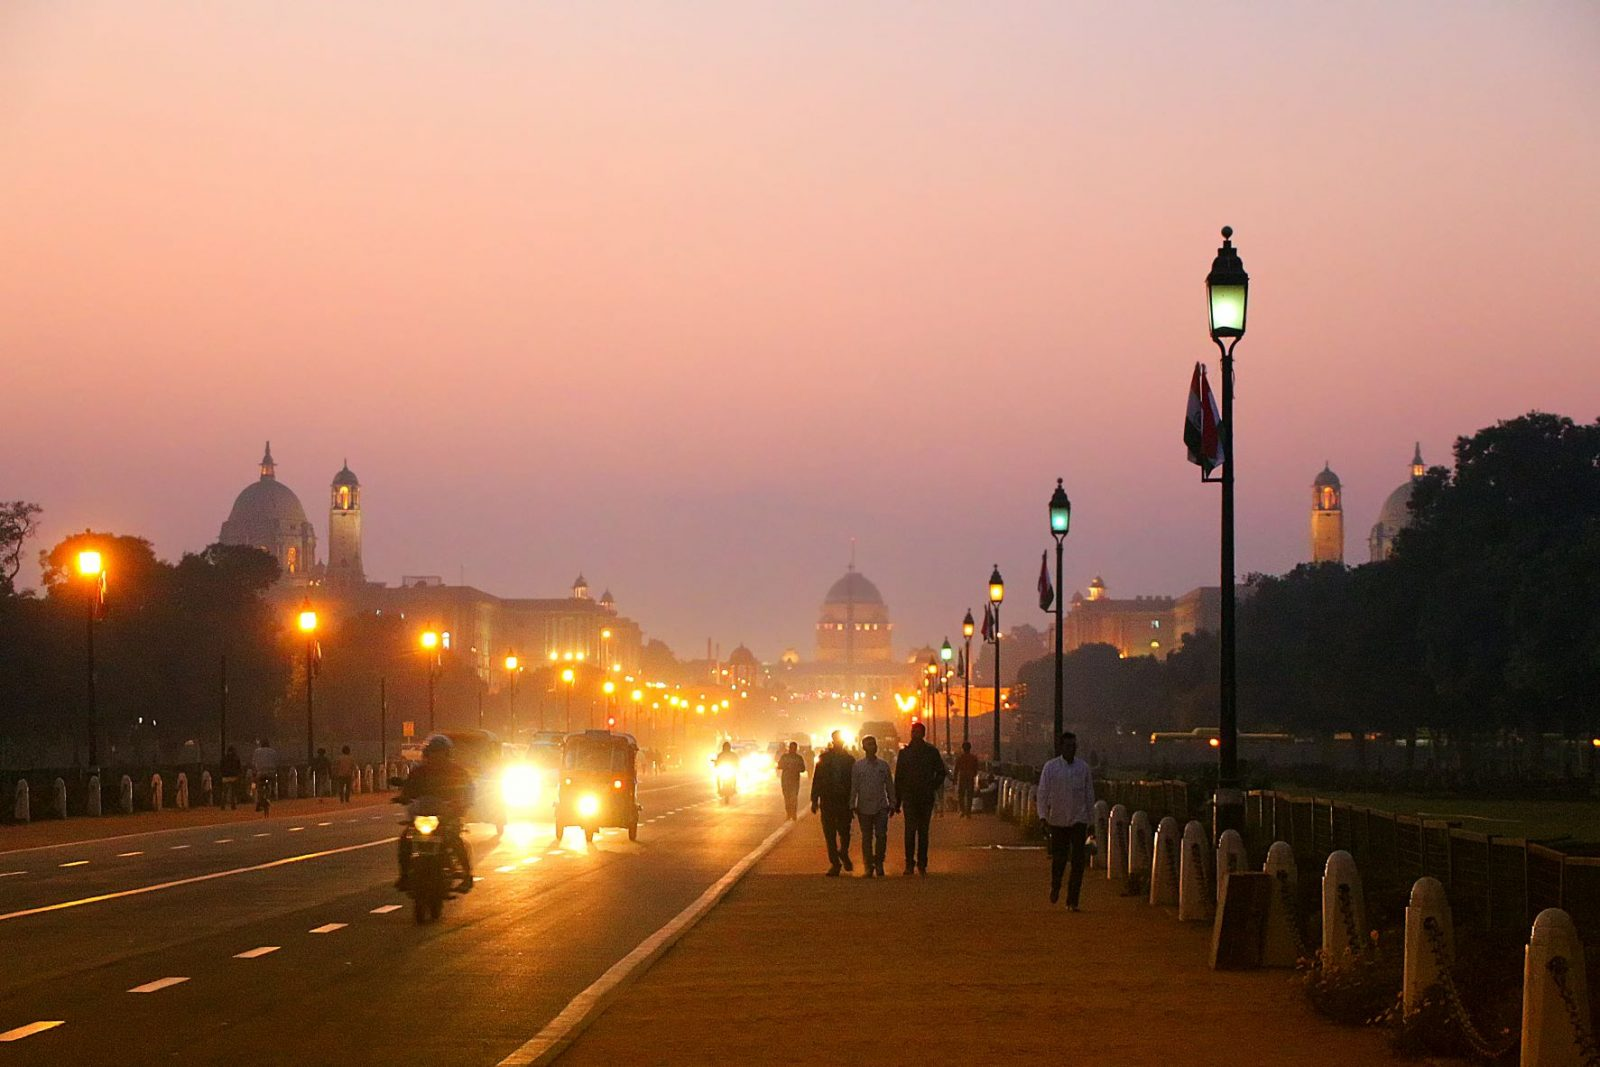 Image of downtown Delhi at night. USTDA technical assistance will support smart grid infrastructure in Delhi, India.